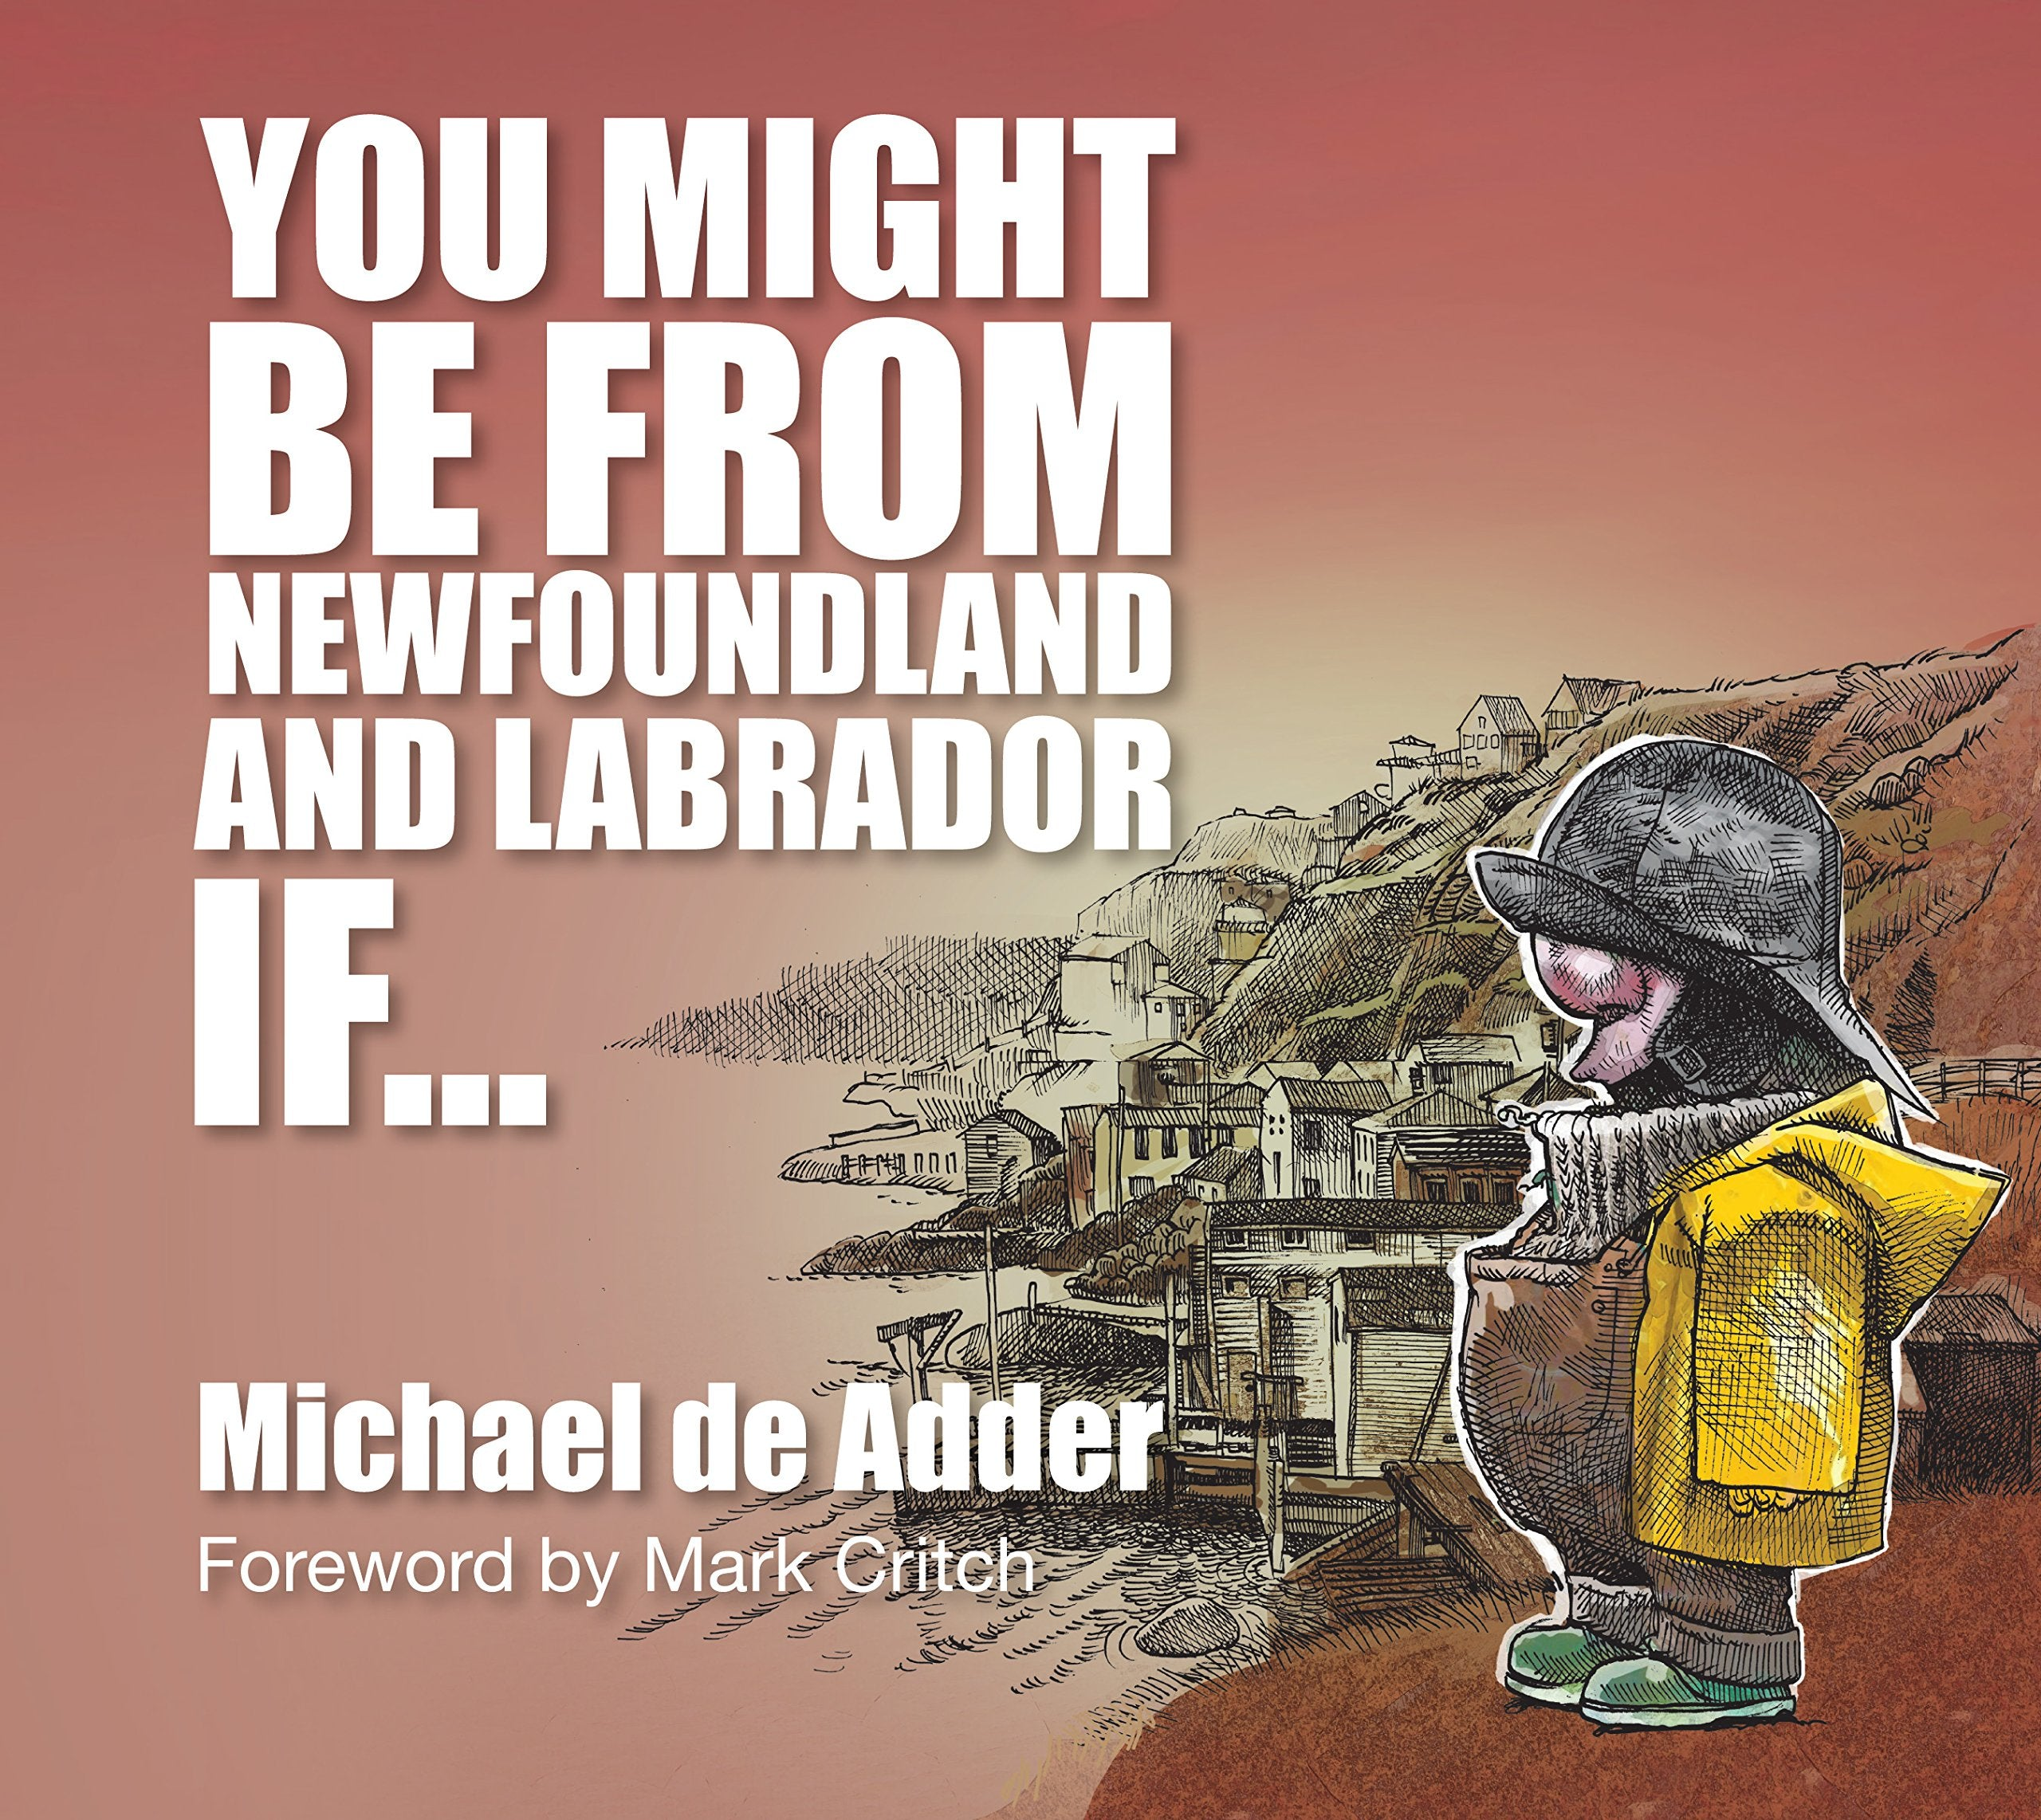 You Might Be From Newfoundland If...